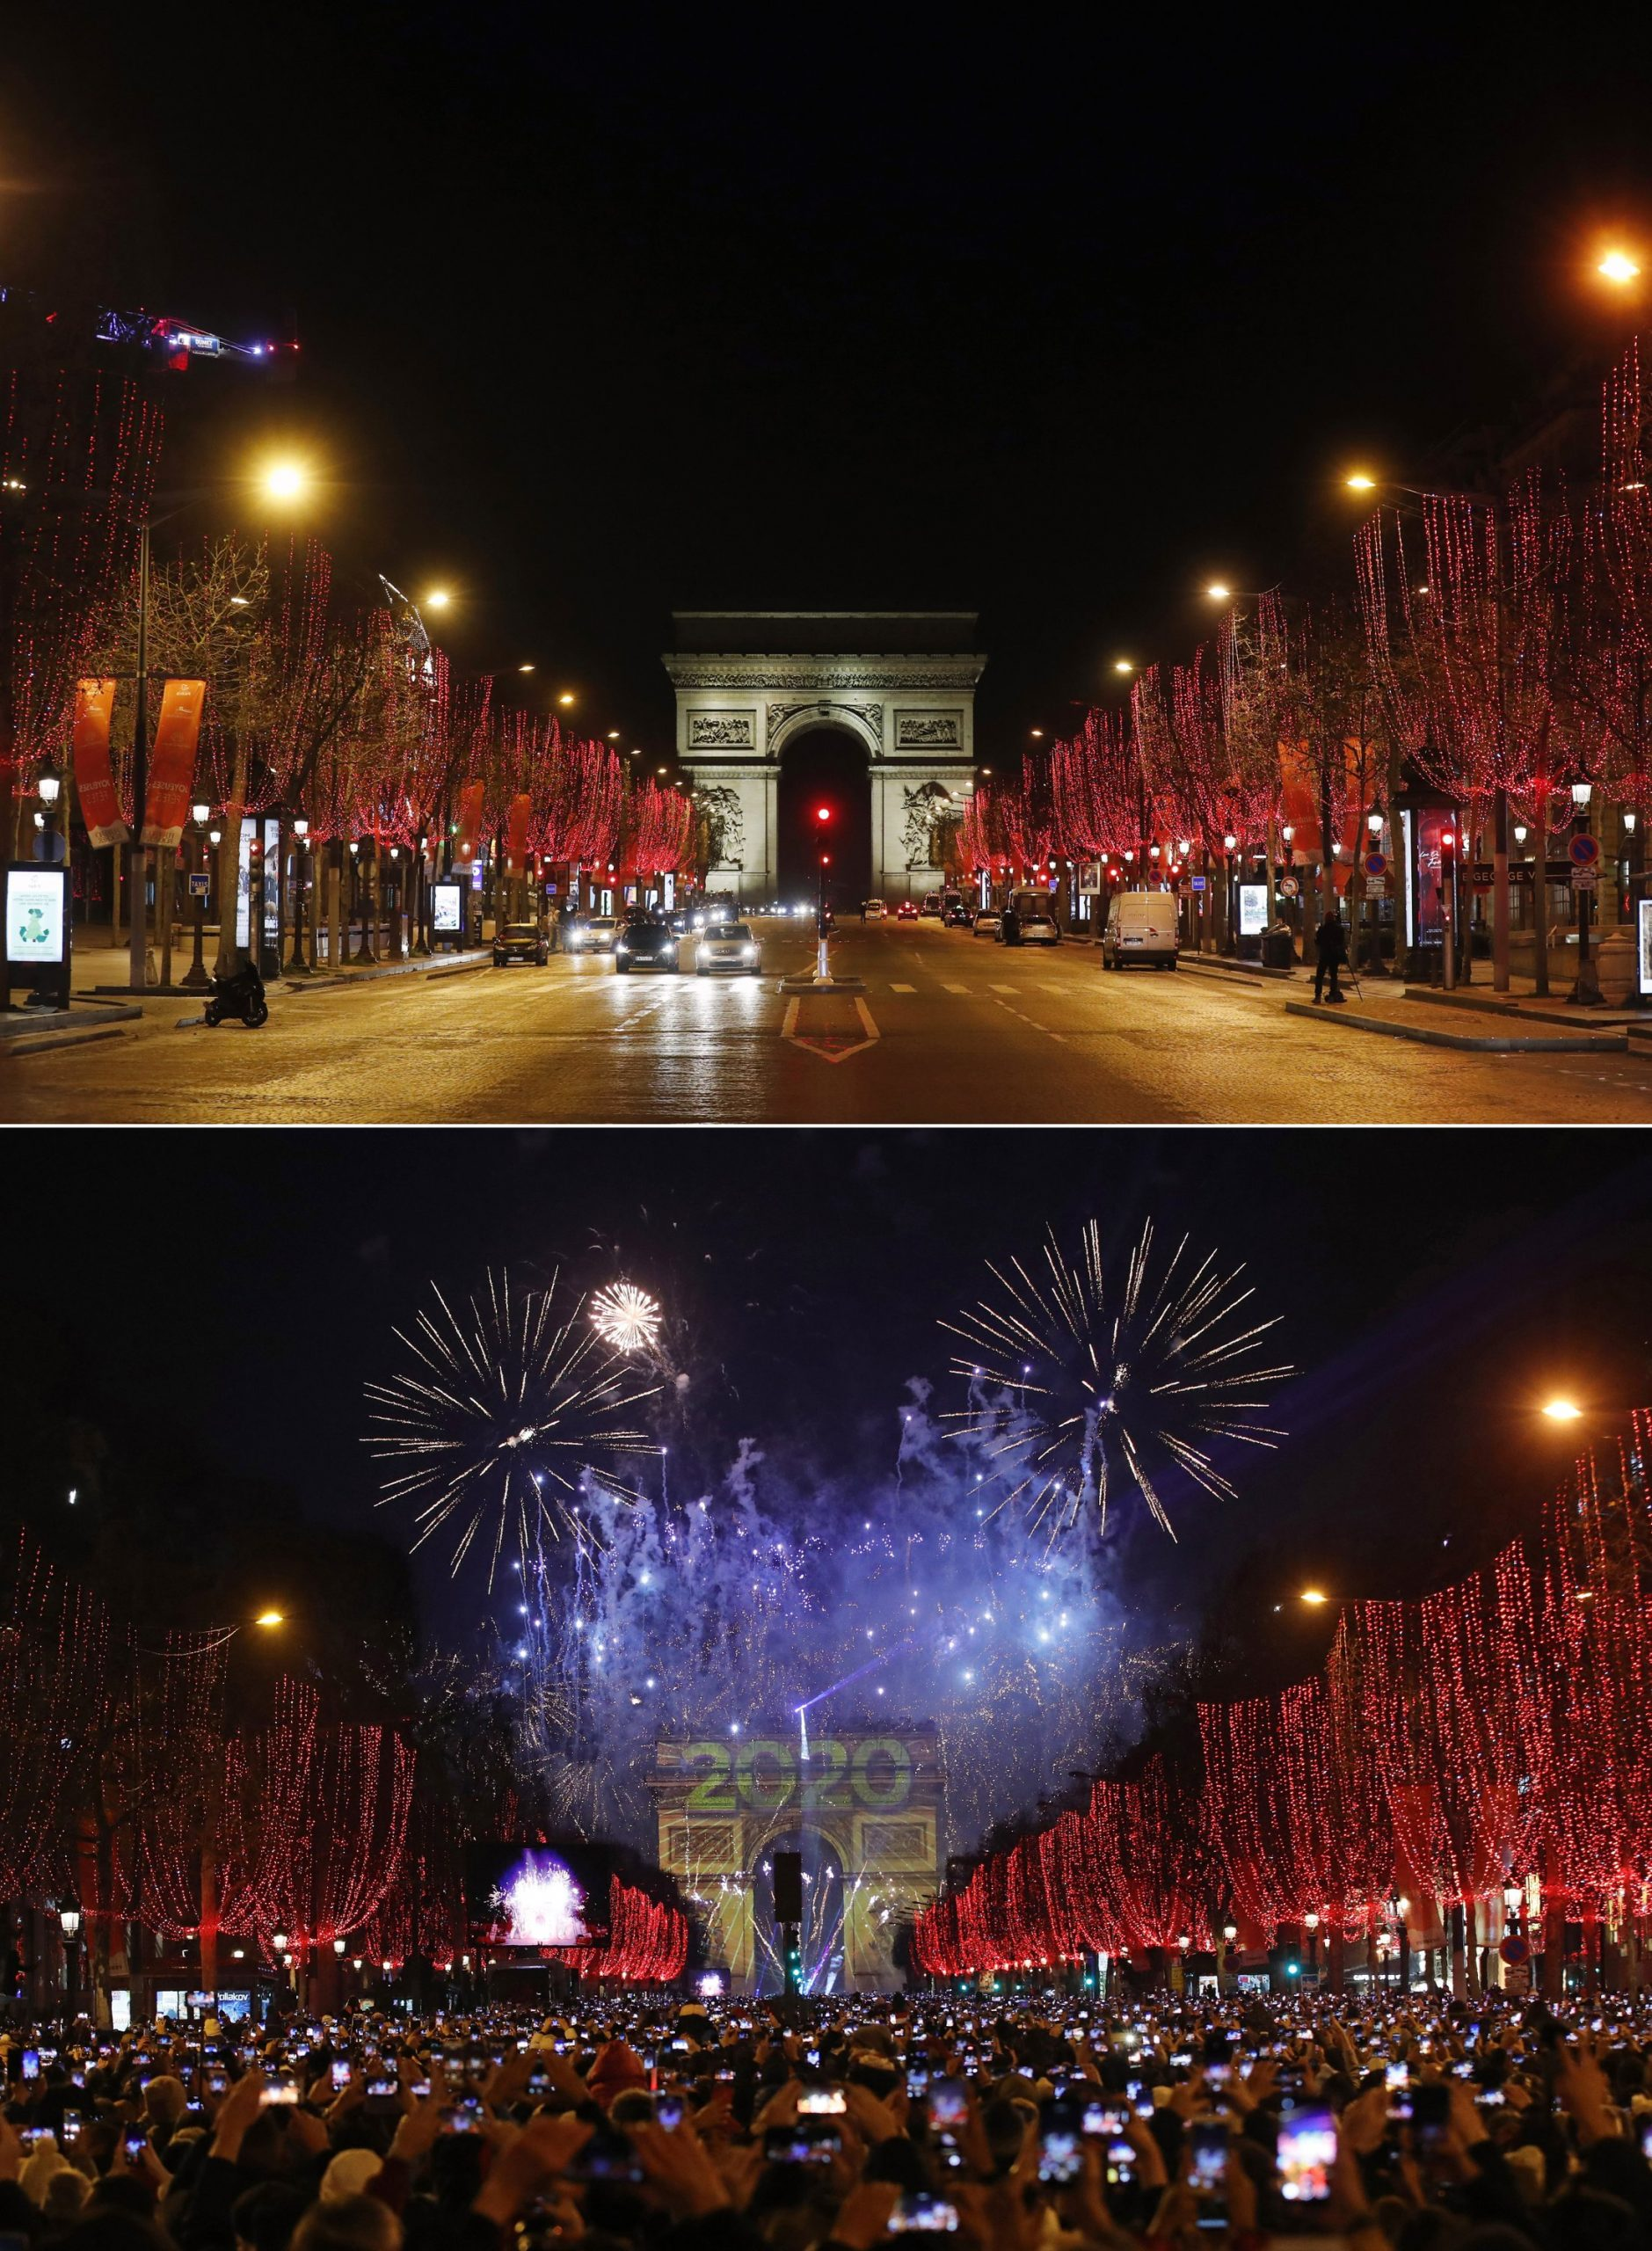 Previous and current photos show the contrast for New Year's Eve